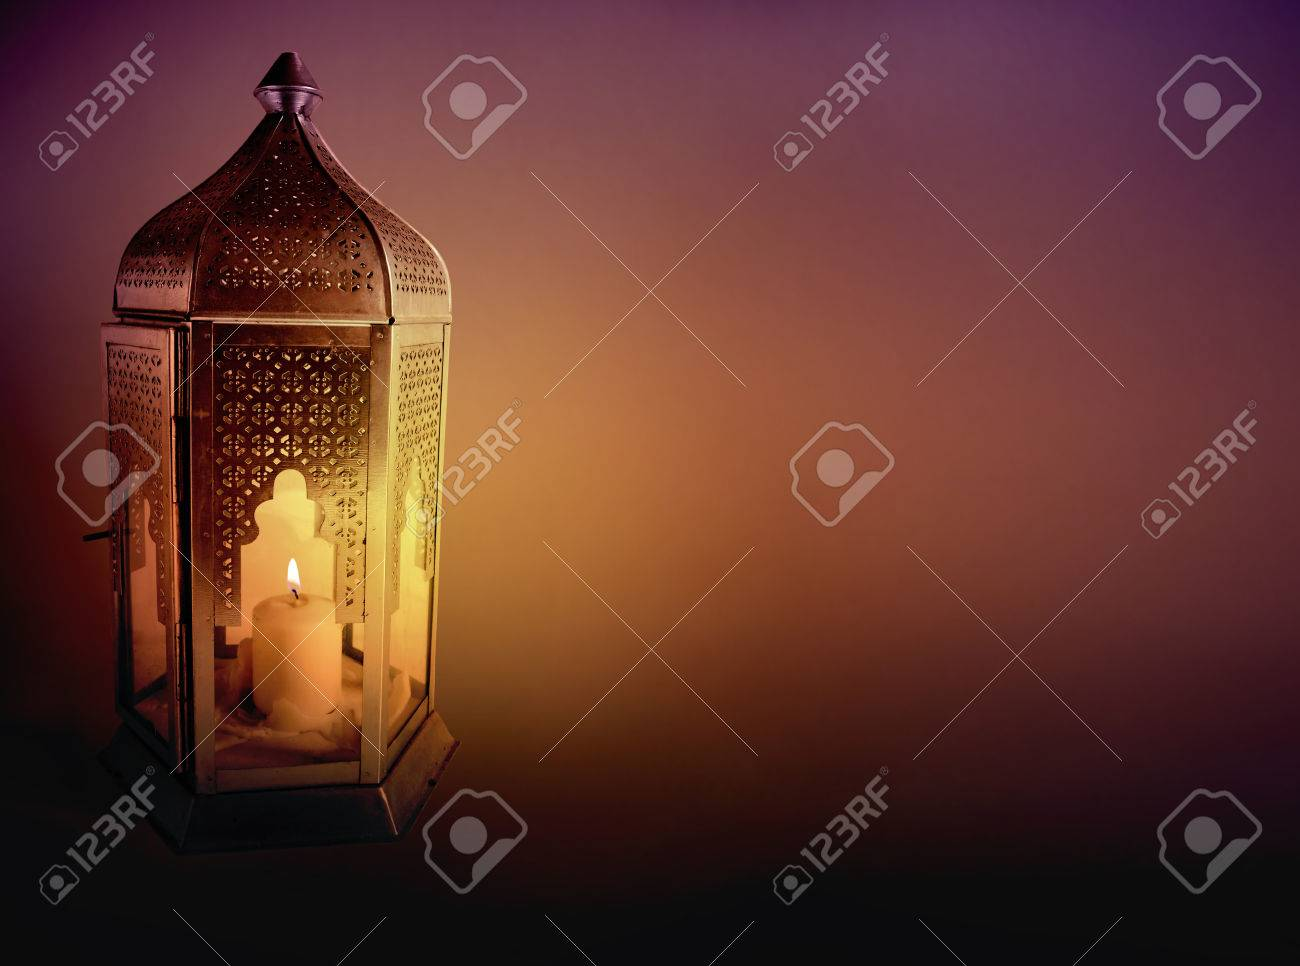 Ornamental Arabic lantern with burning candle glowing at night. Greeting card, invitation for Muslim community holy month Ramadan Kareem. Dark background with a lot of empty space. - 78069186